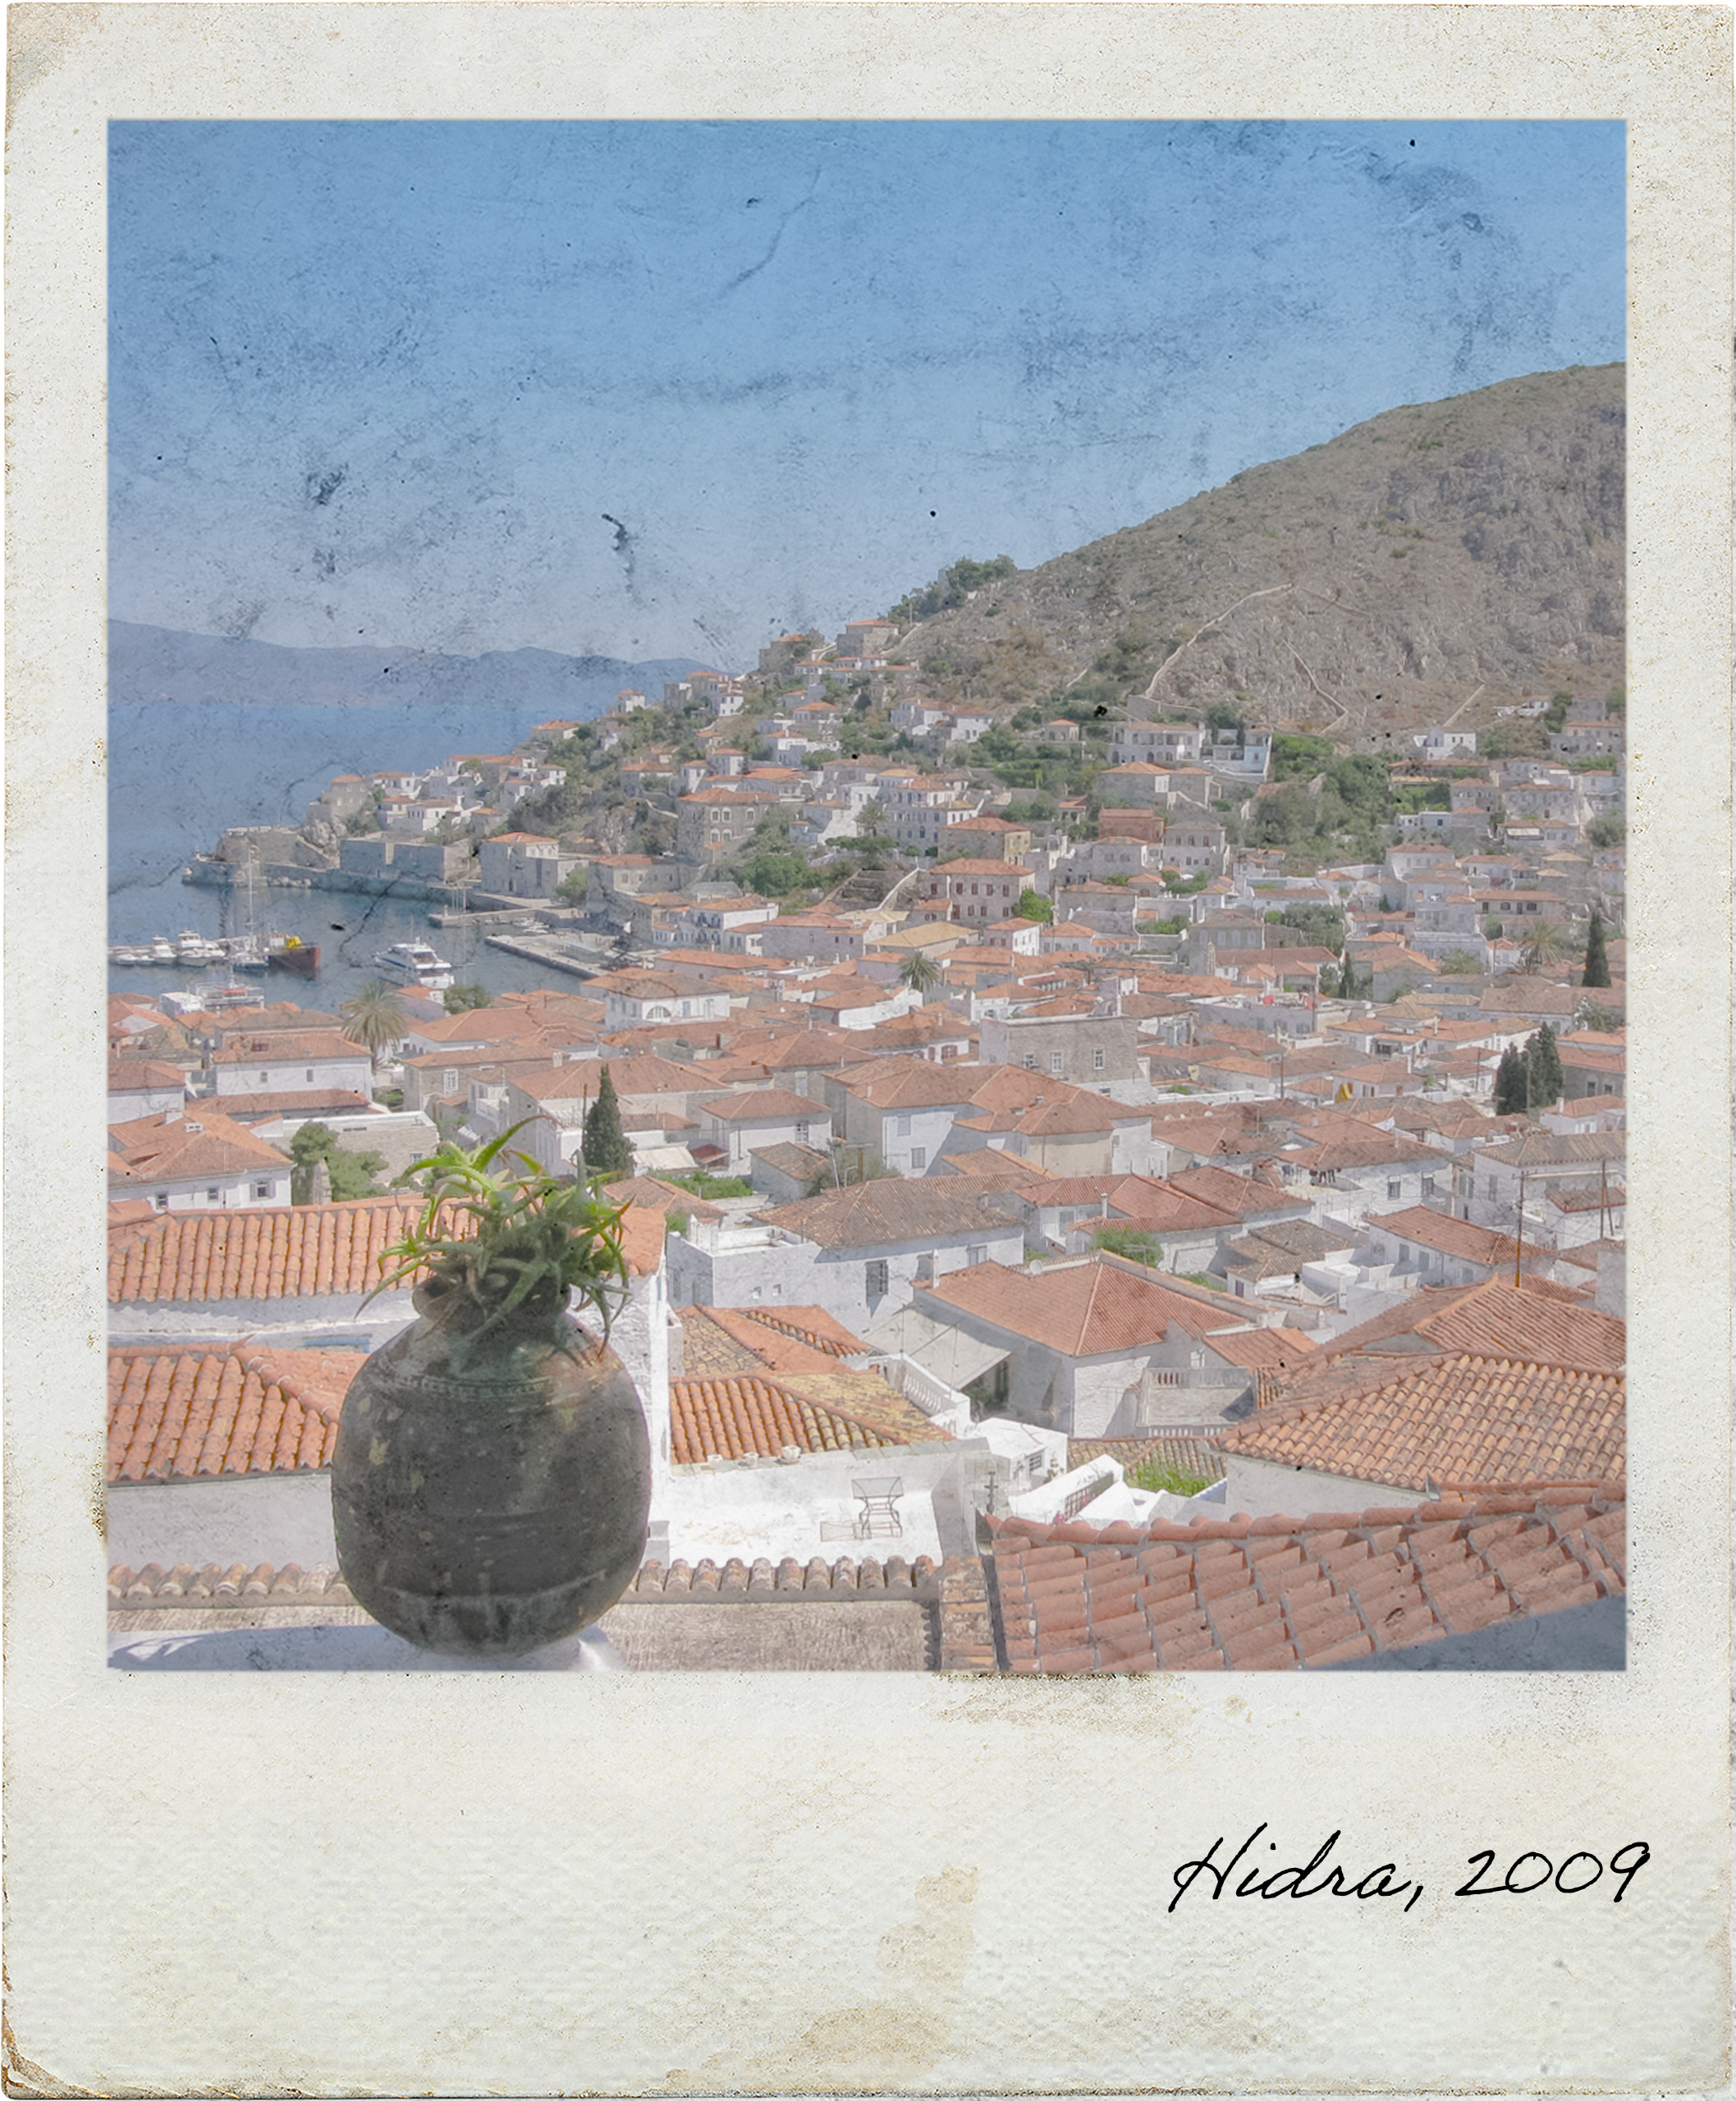 Overview of Hydra town